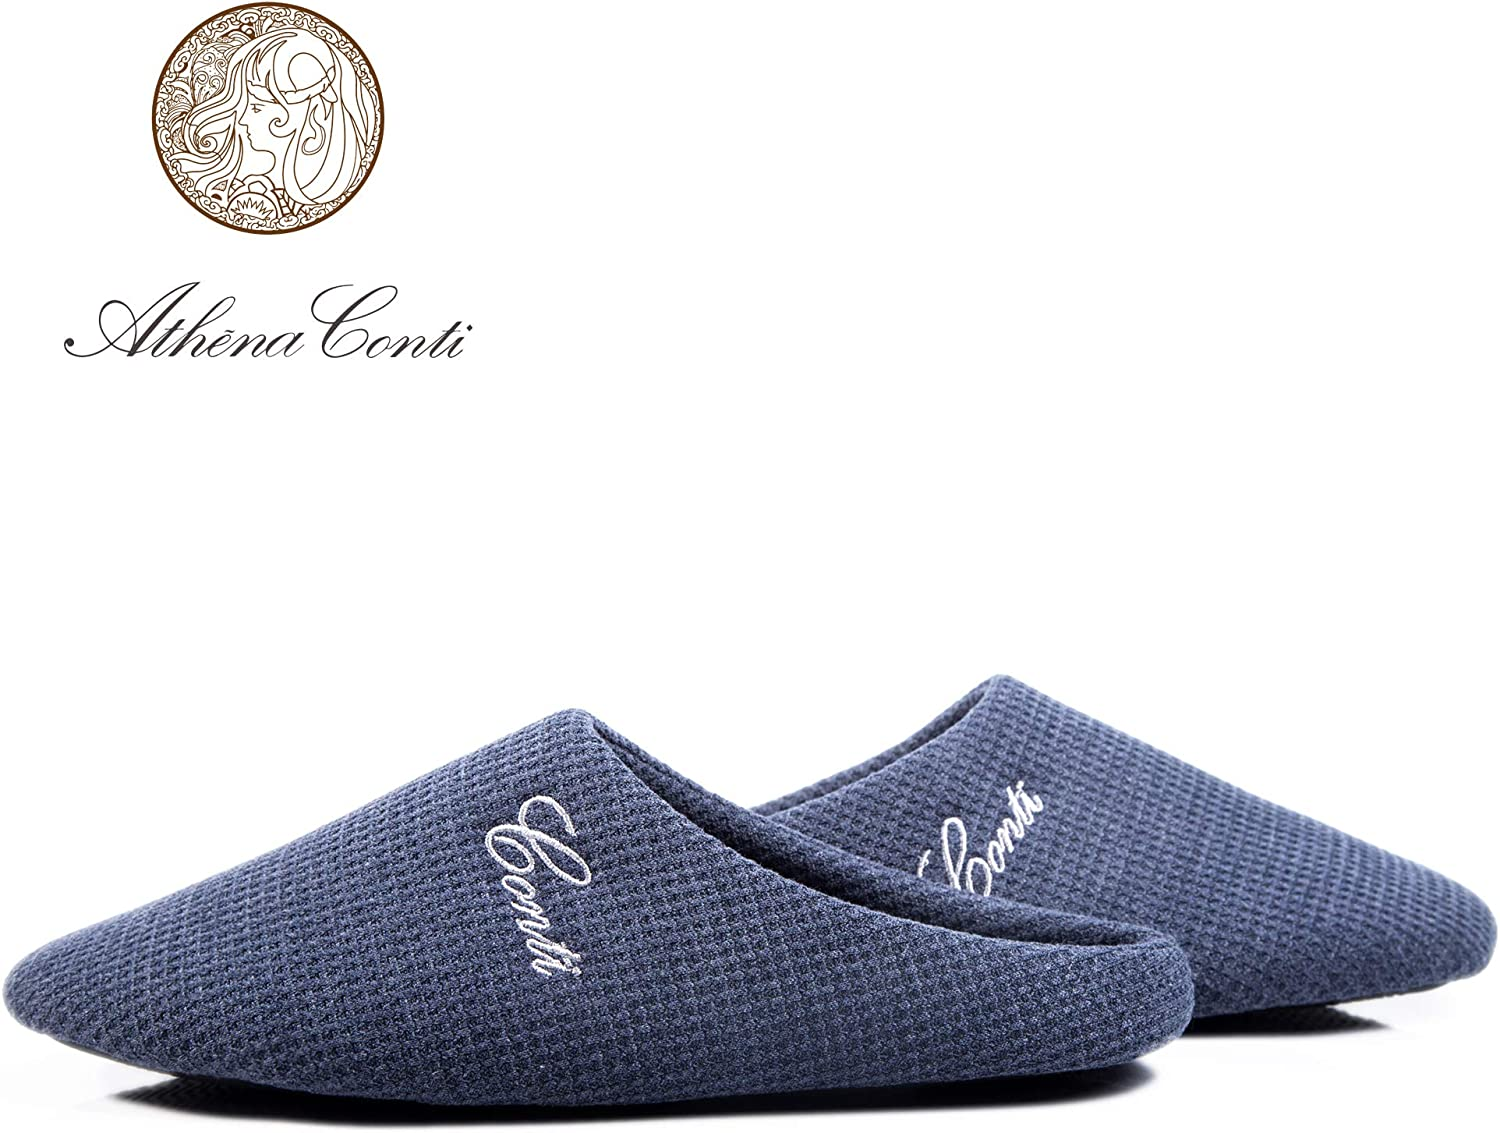 Conti Home Ideal Indoor shoes Comfort Knitted Slip ons Memory Form Slippers for Men and Women